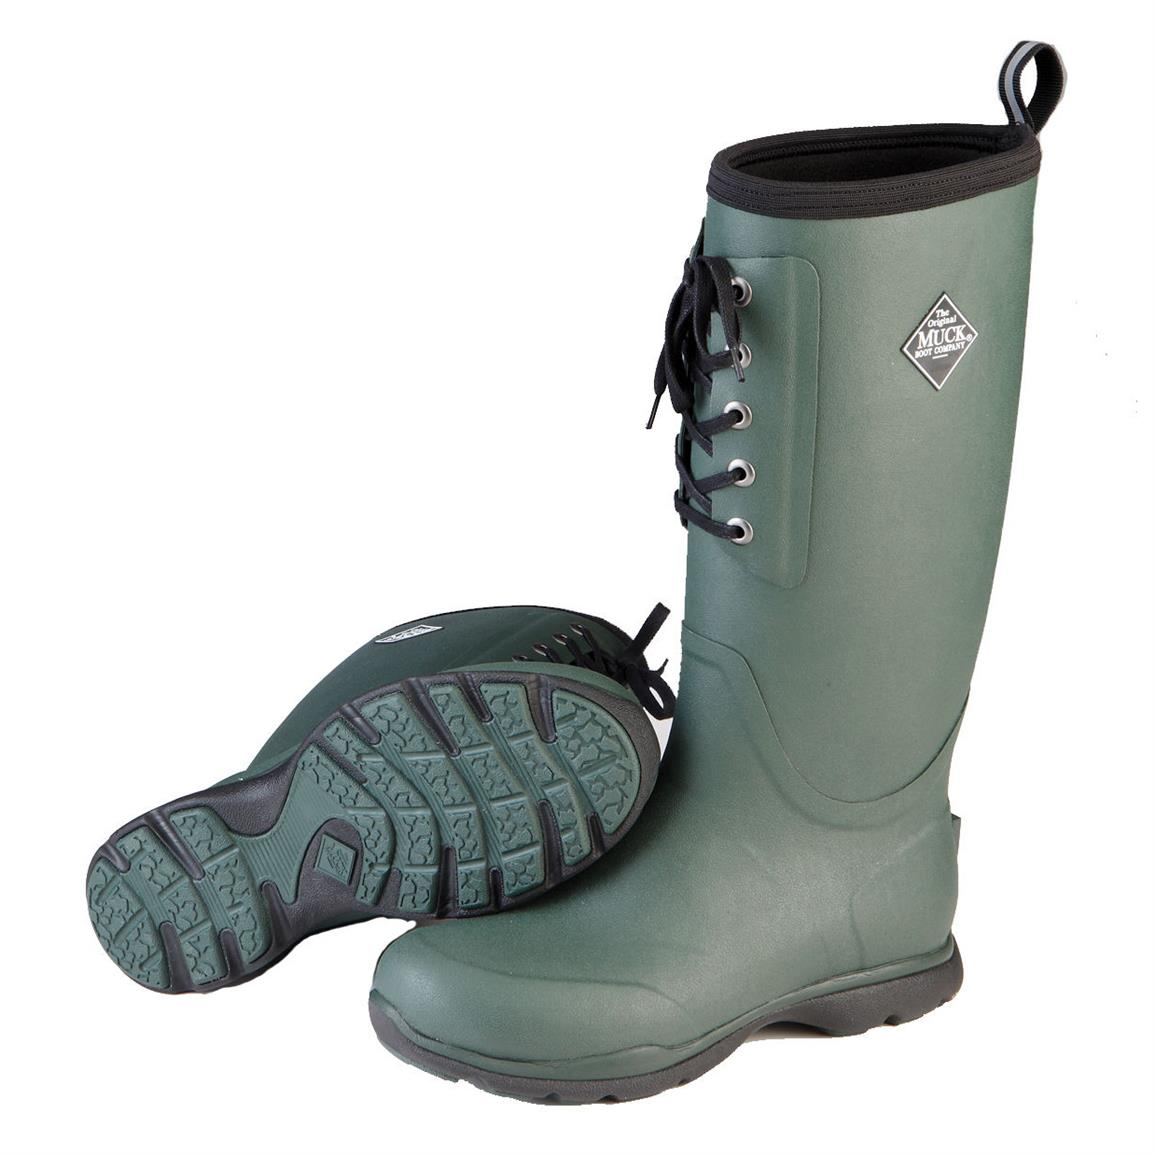 Muck Arctic Excursion Lace Tall Waterproof Insulated Rubber Boots, Green